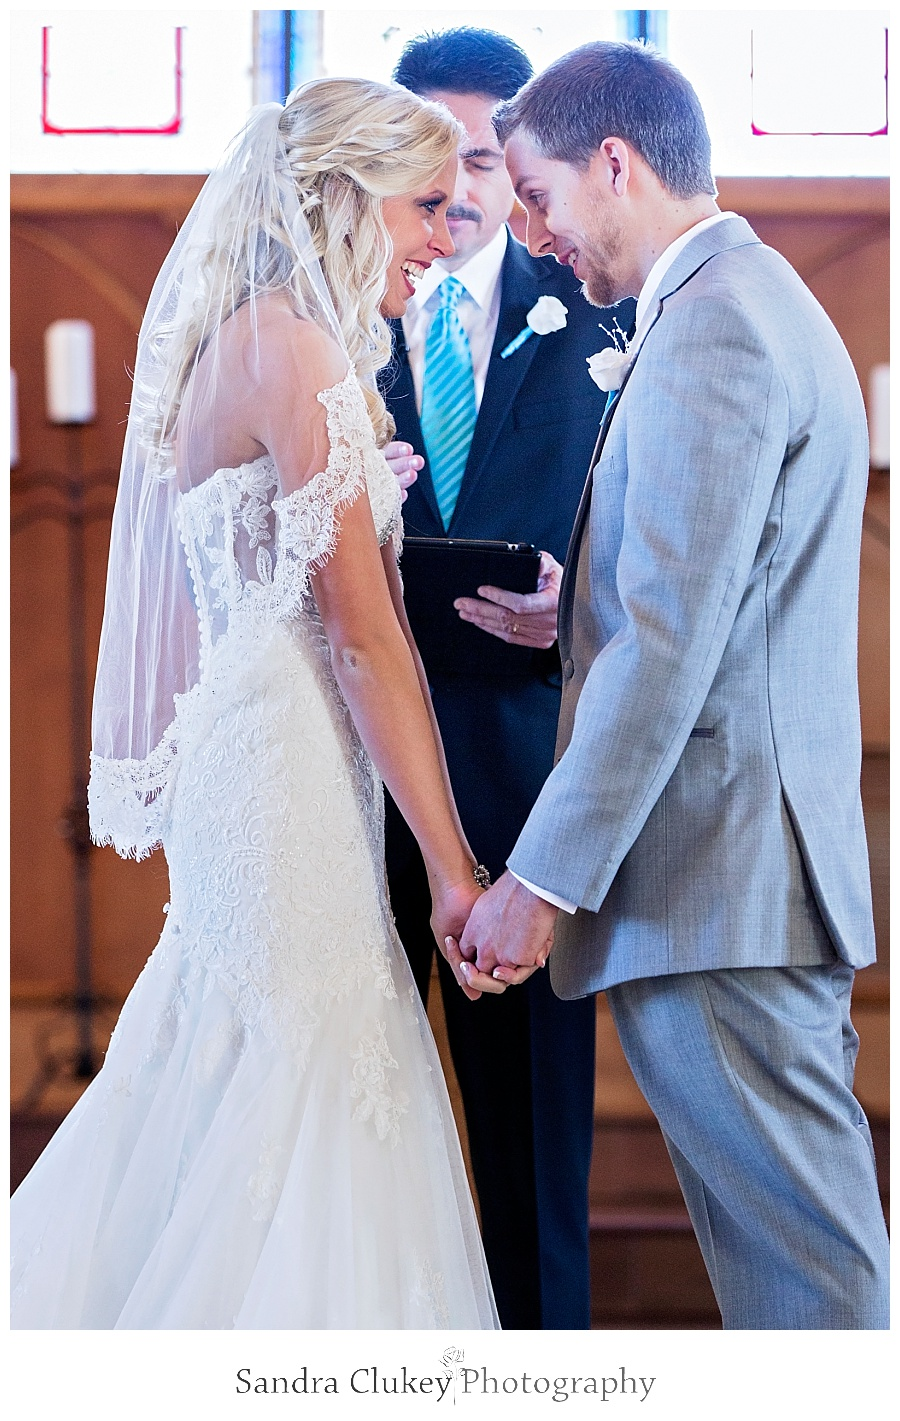 Bride and Groom pray during ceremony